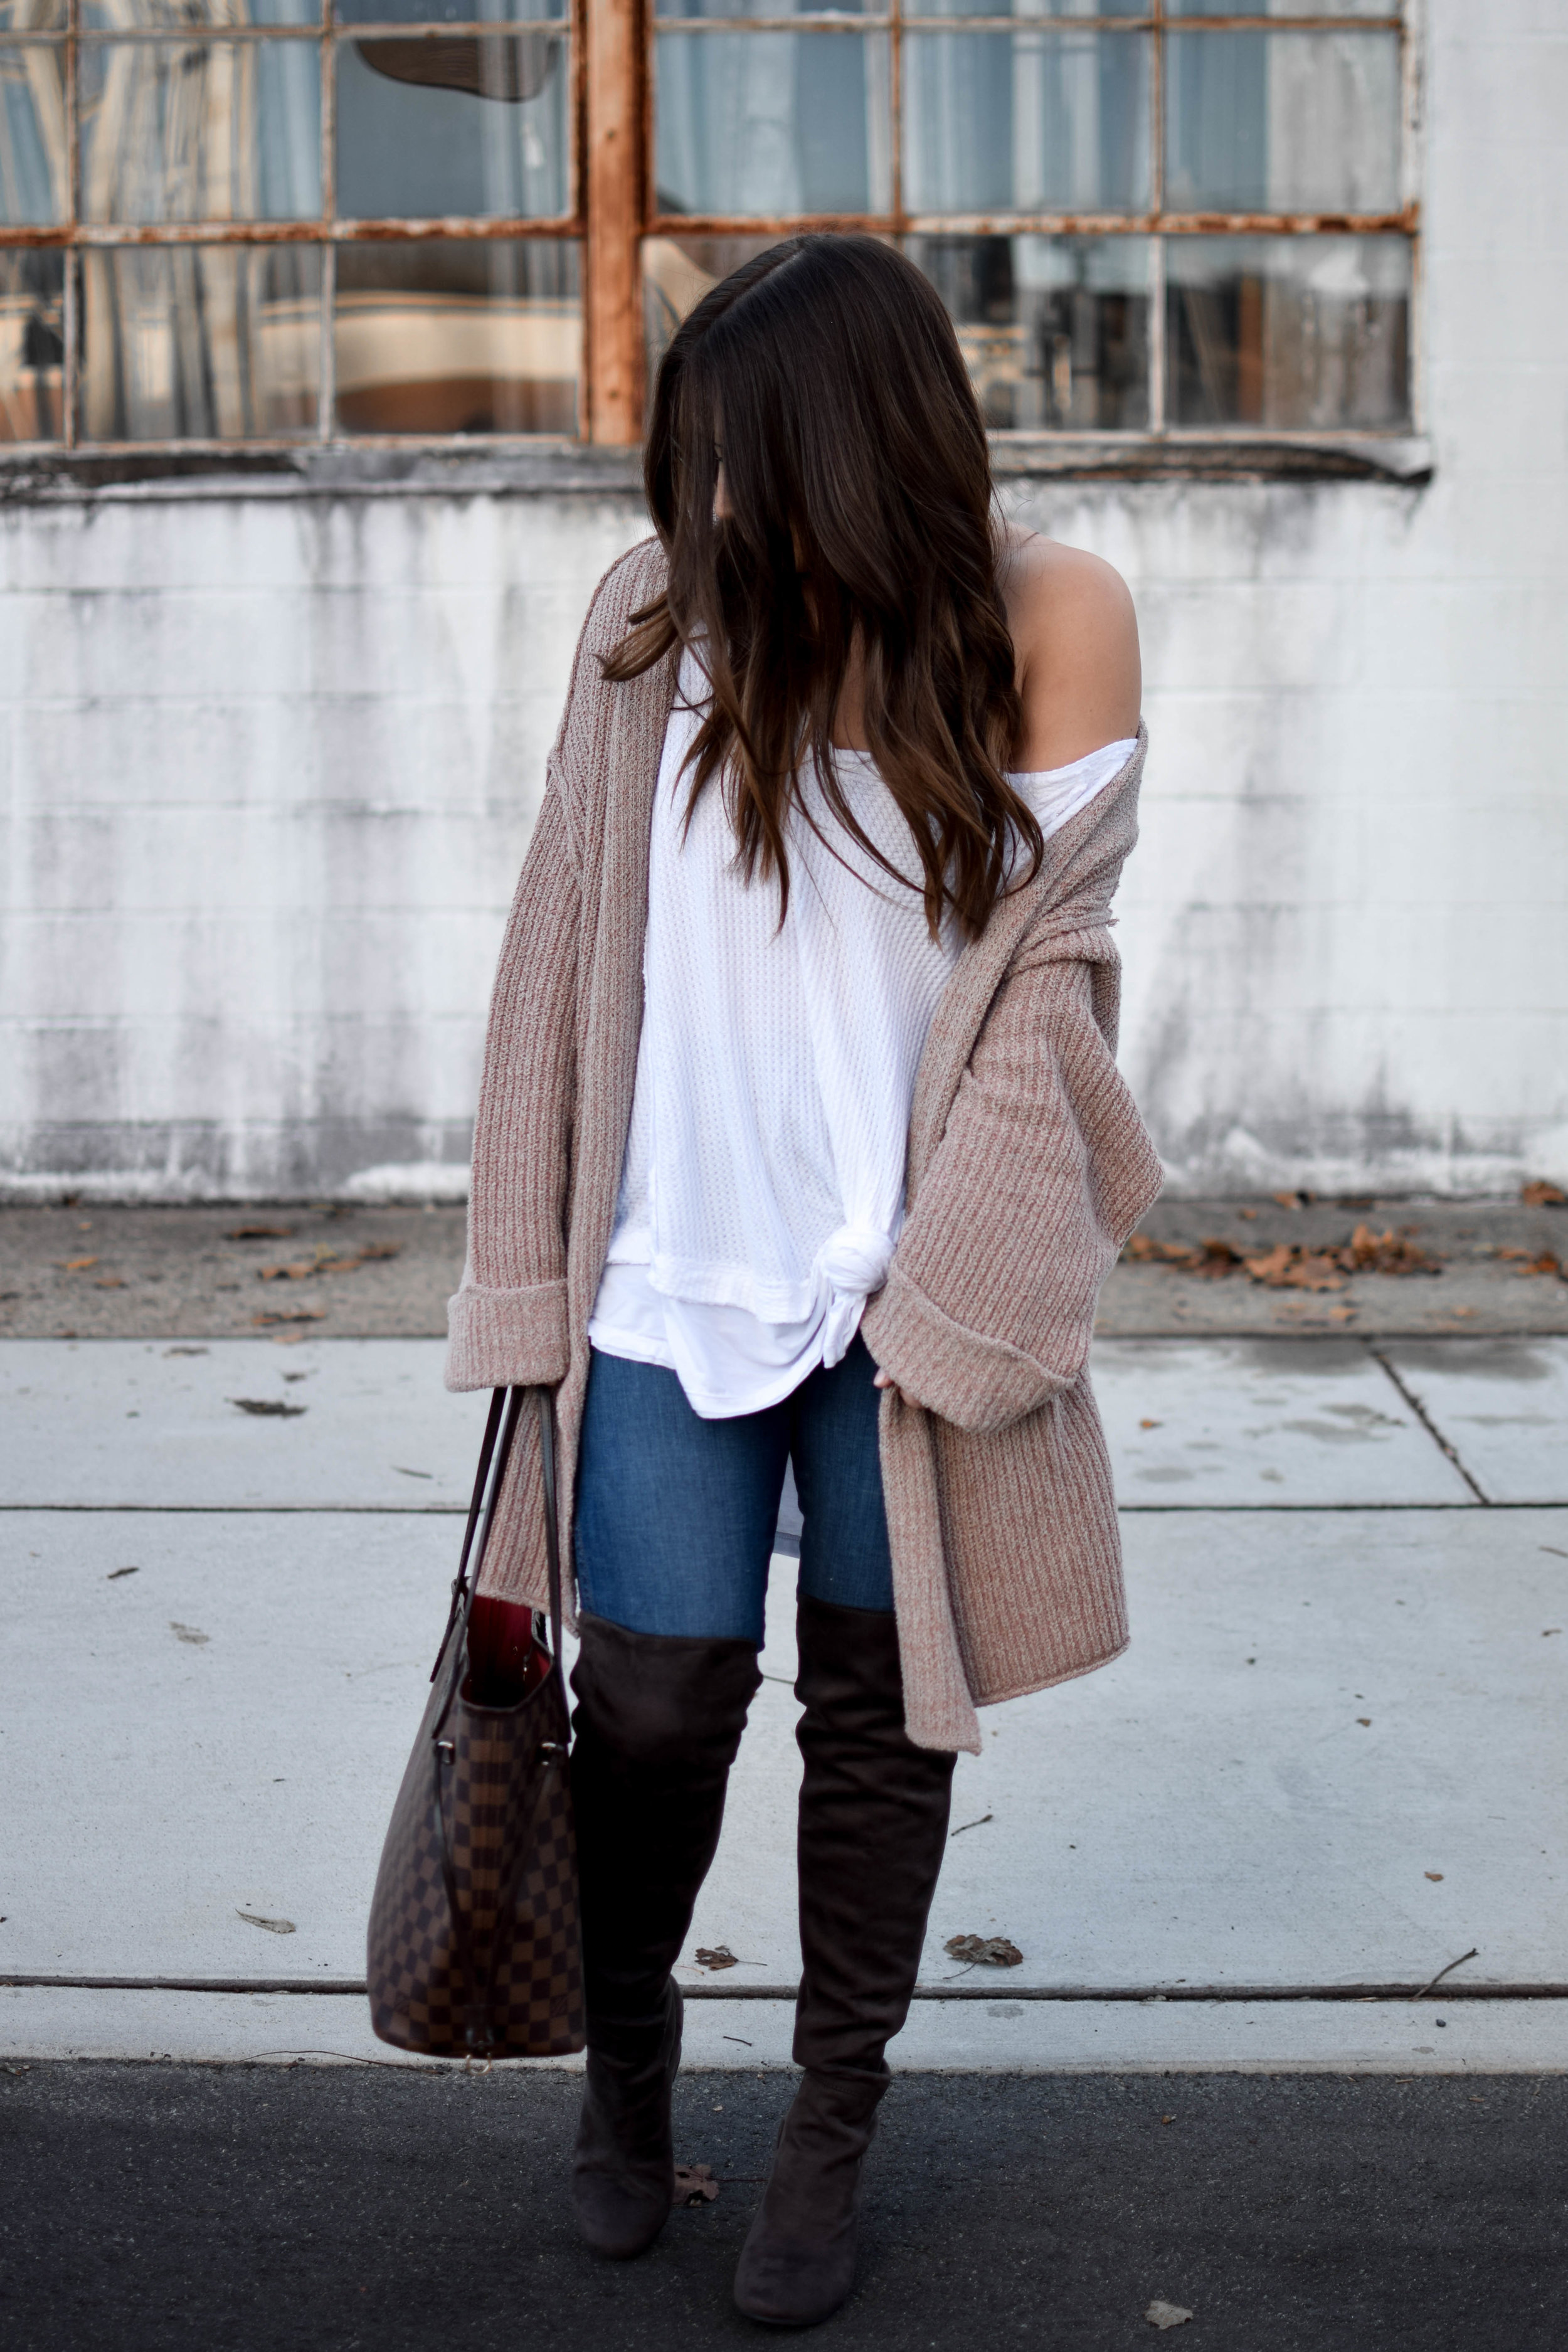 fall fashion / fall outfit idea / fall outfit inspiration / free people thermal / free people cardigan / over the knee boots / fall feels / fall vibes